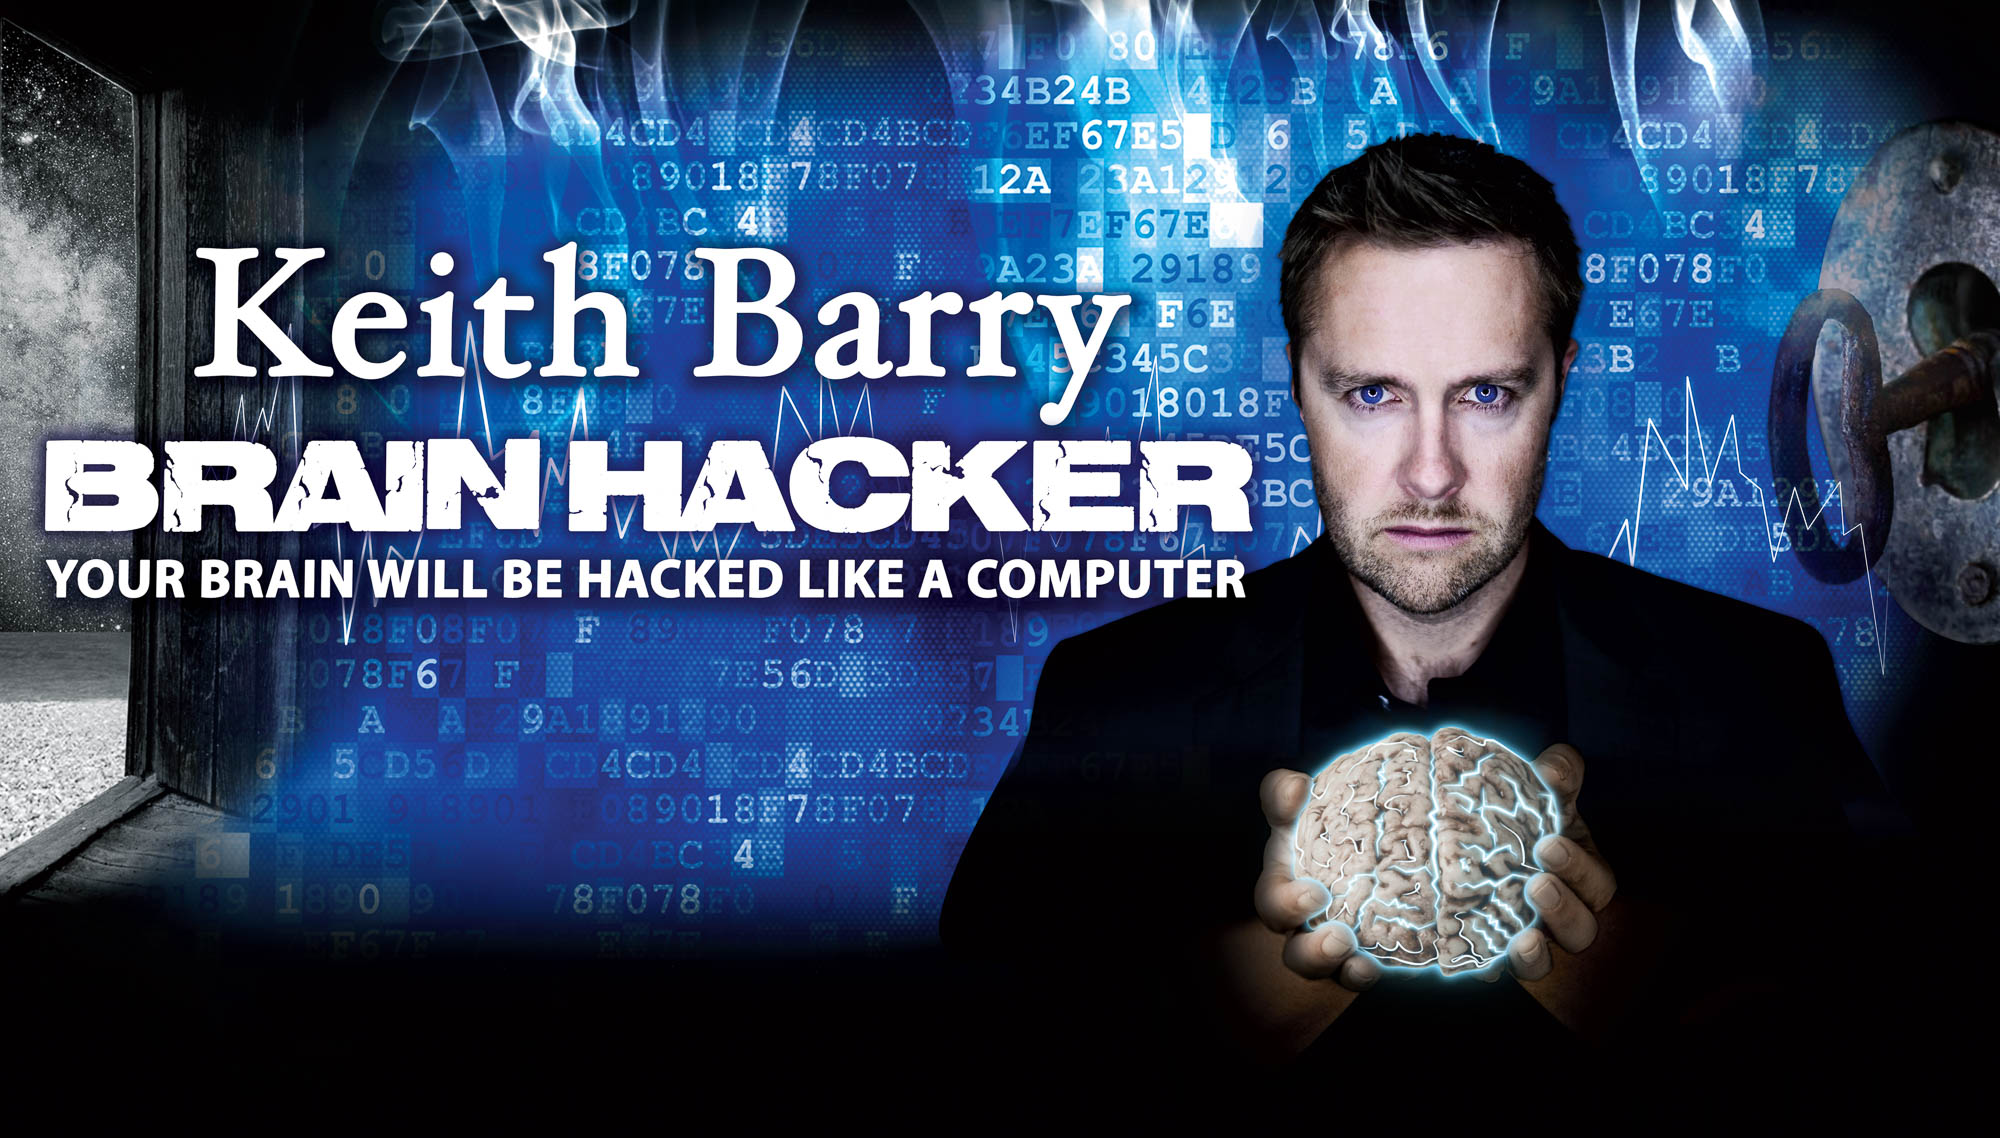 Keith Barry - Brain Hacker